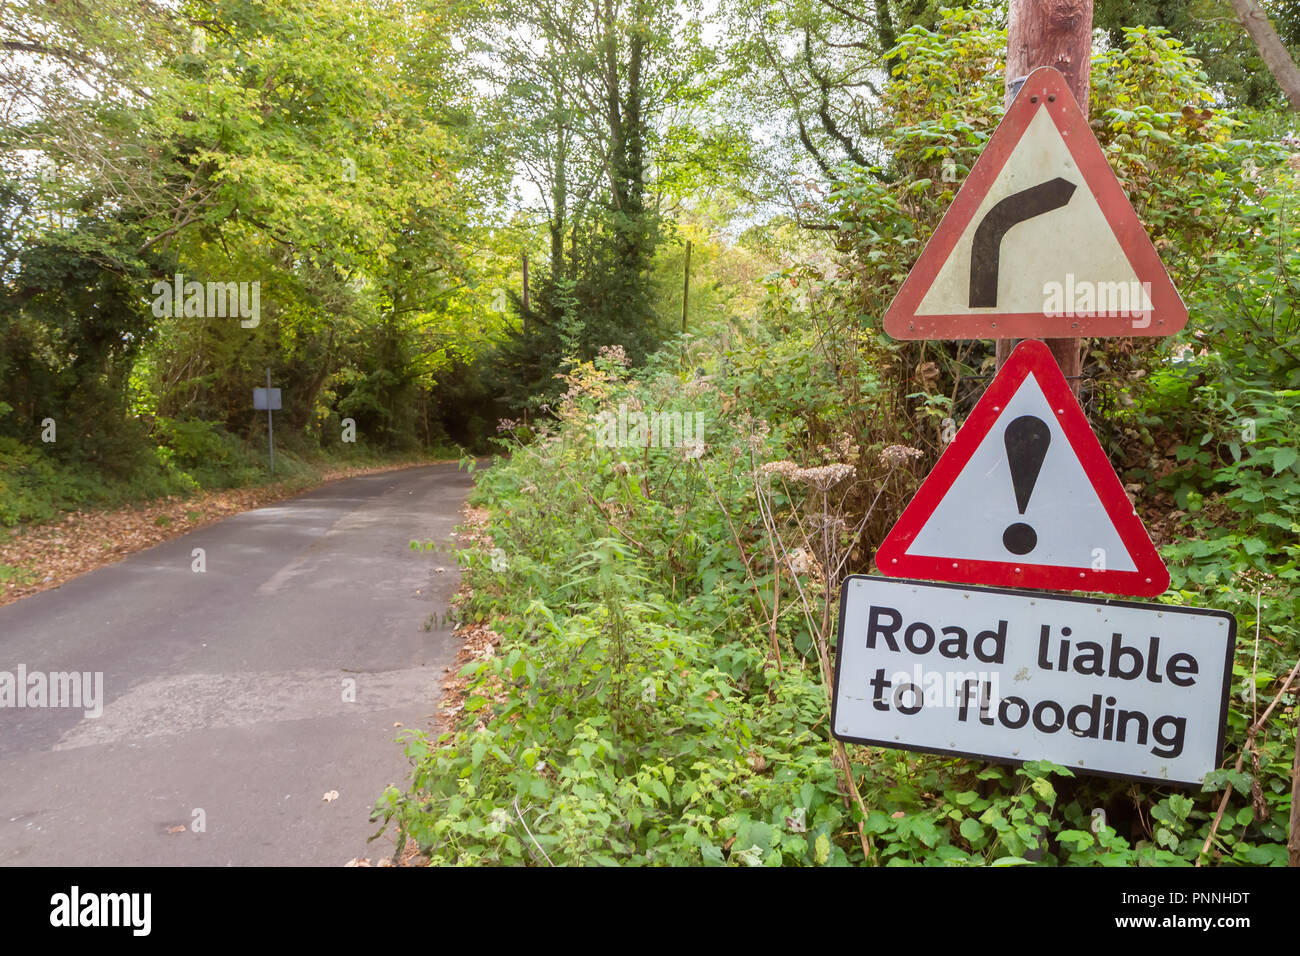 Flood warning sign on country road in England, UK - Stock Image